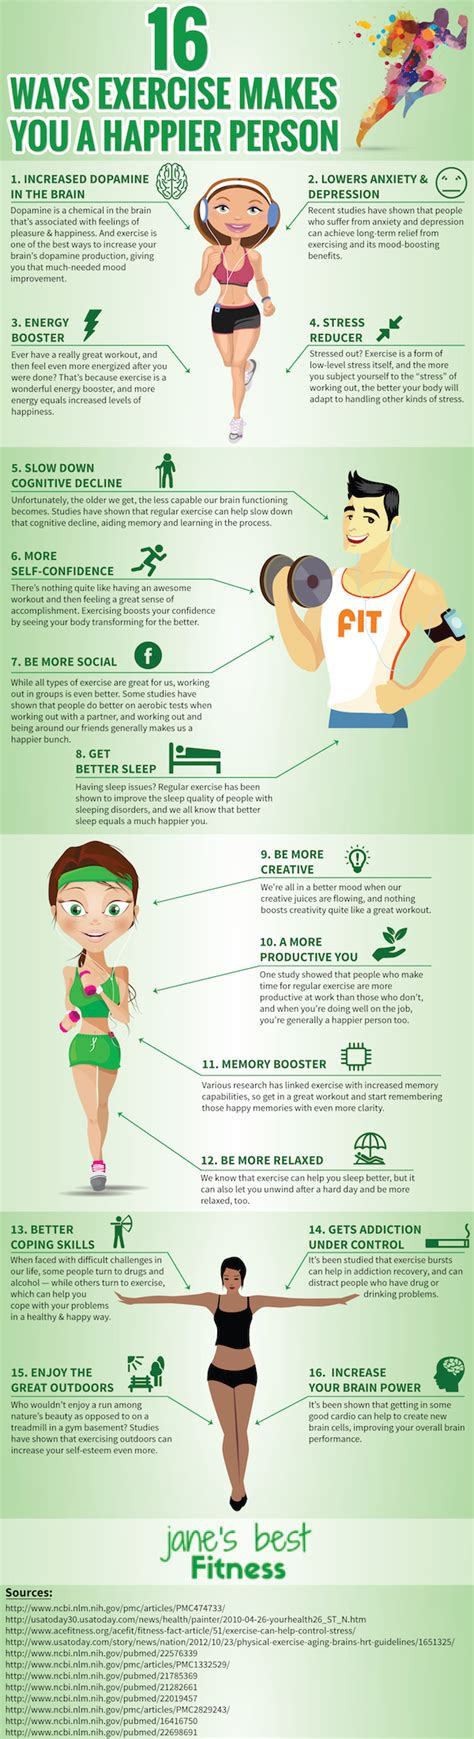 newspaper layout exercises infographic 16 ways exercise makes you a happier person